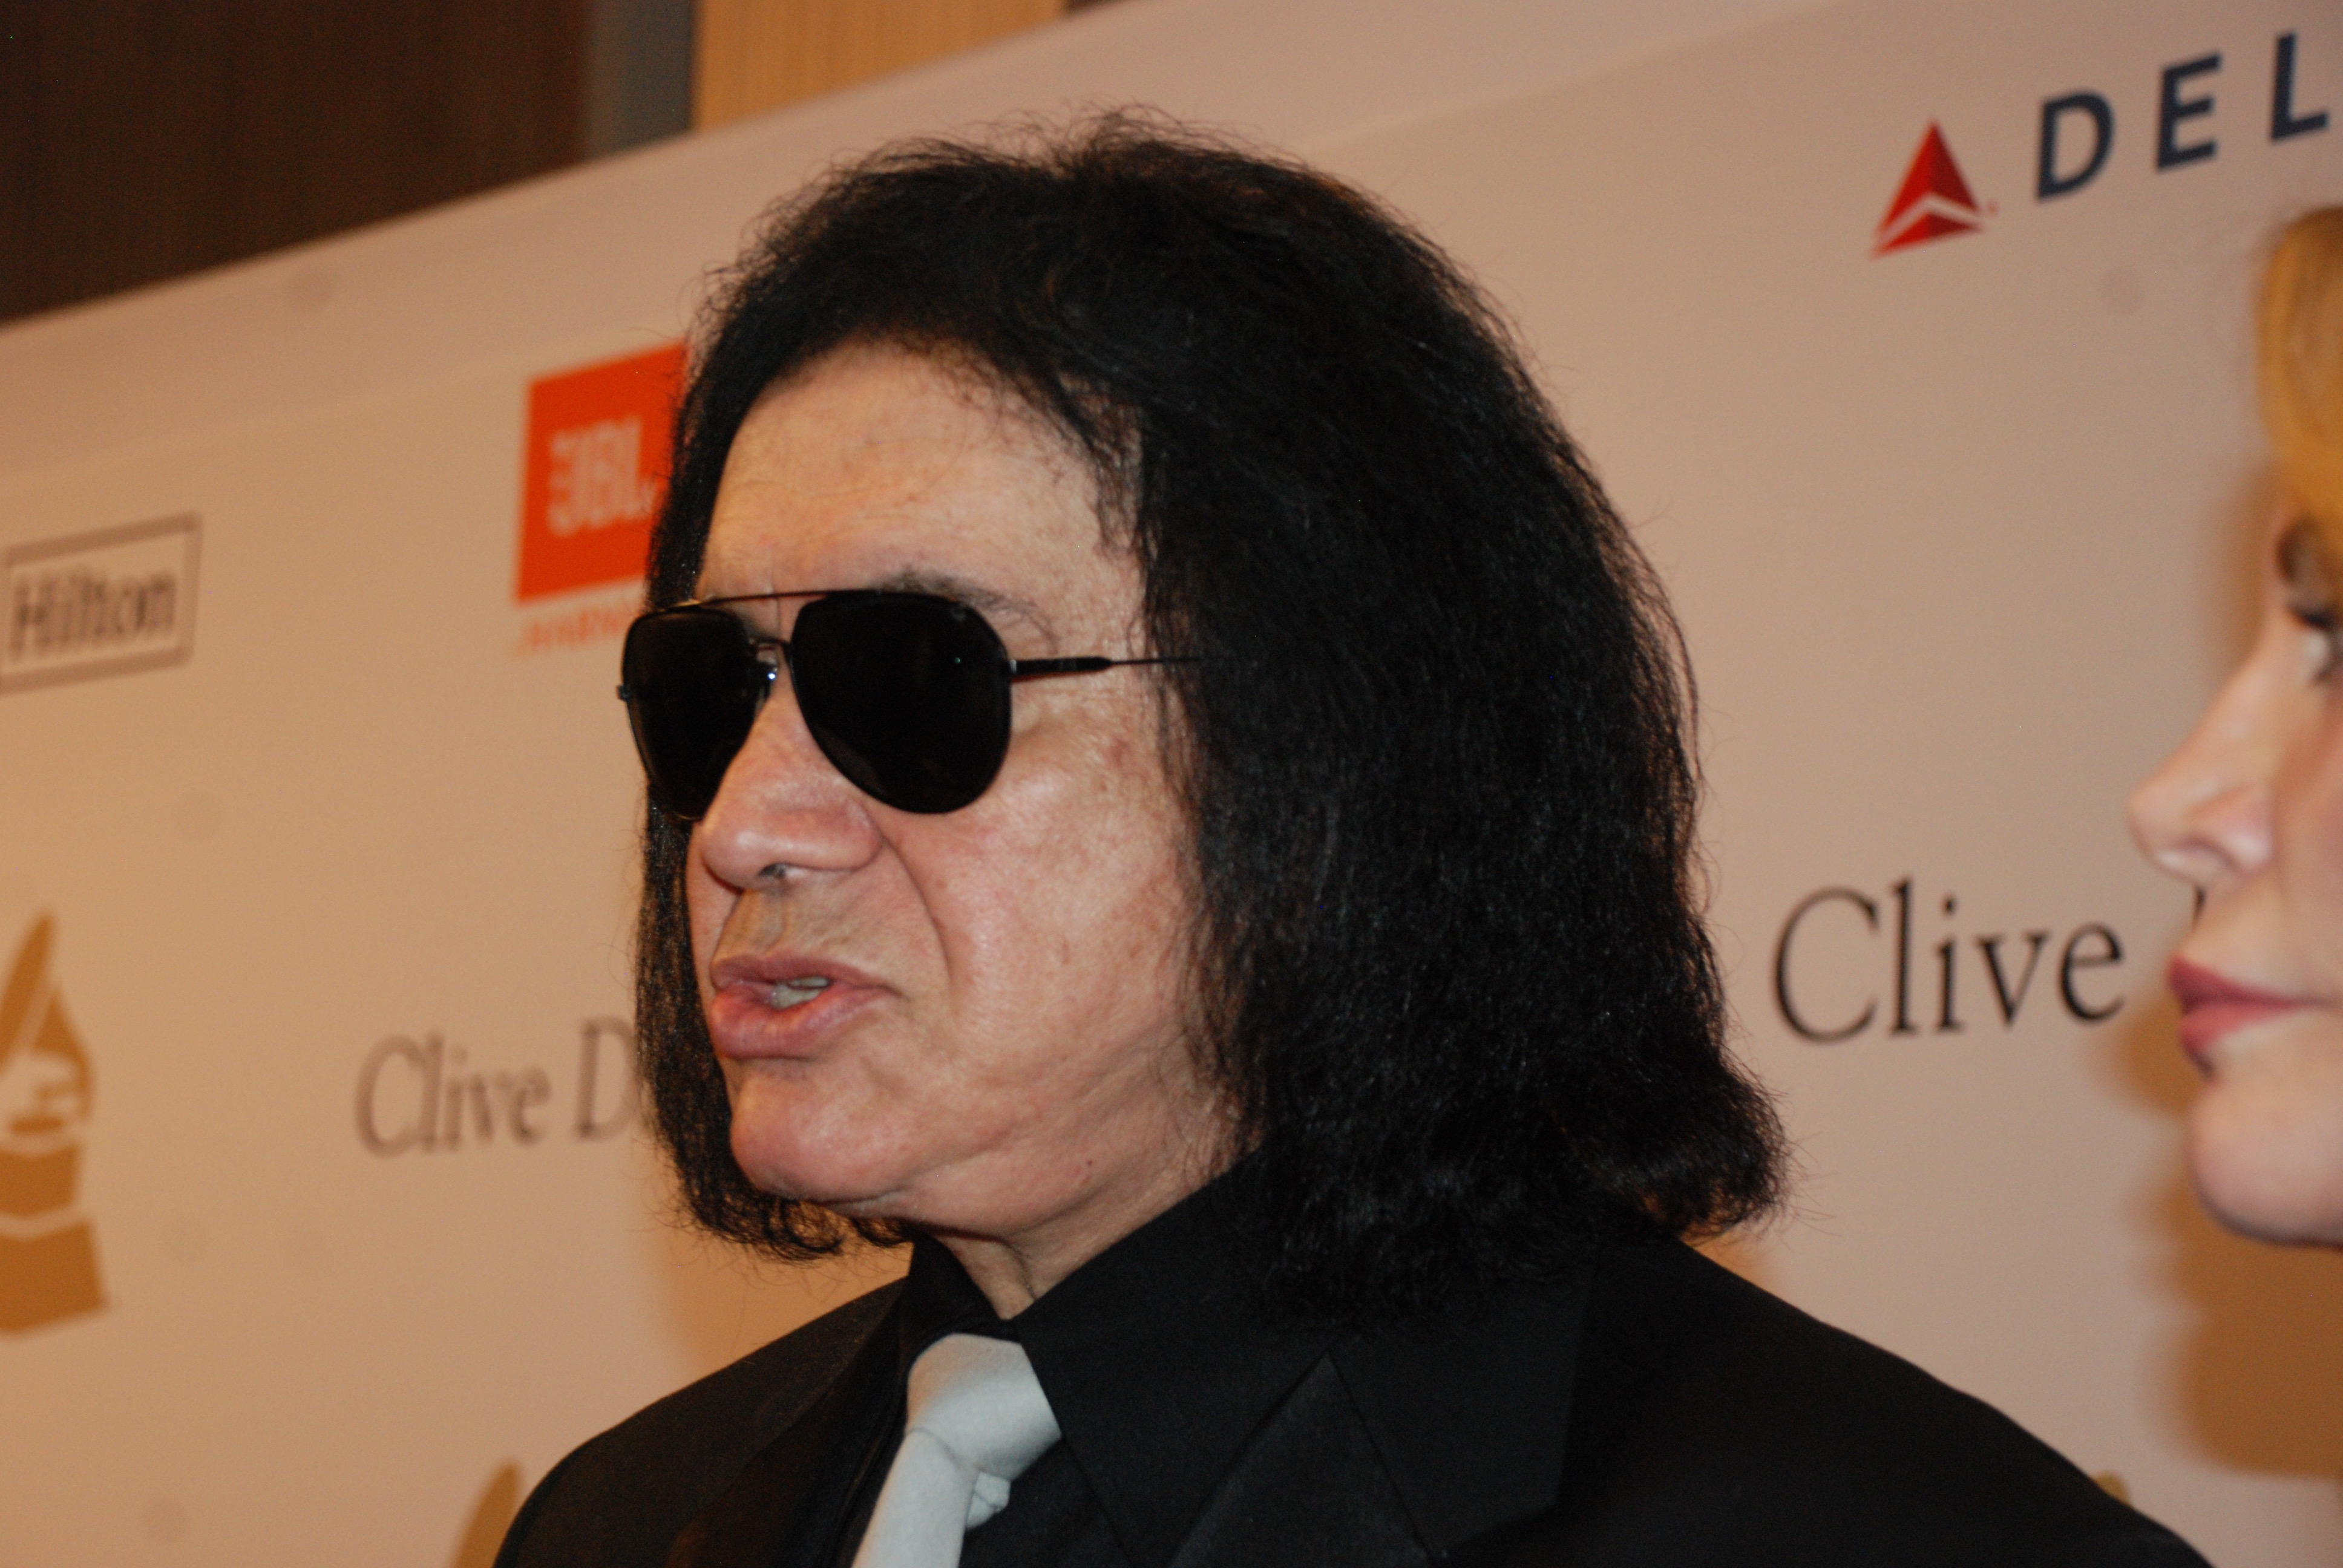 GENE_SIMMONS_AT_CLIVE _DAVIS_EVENT